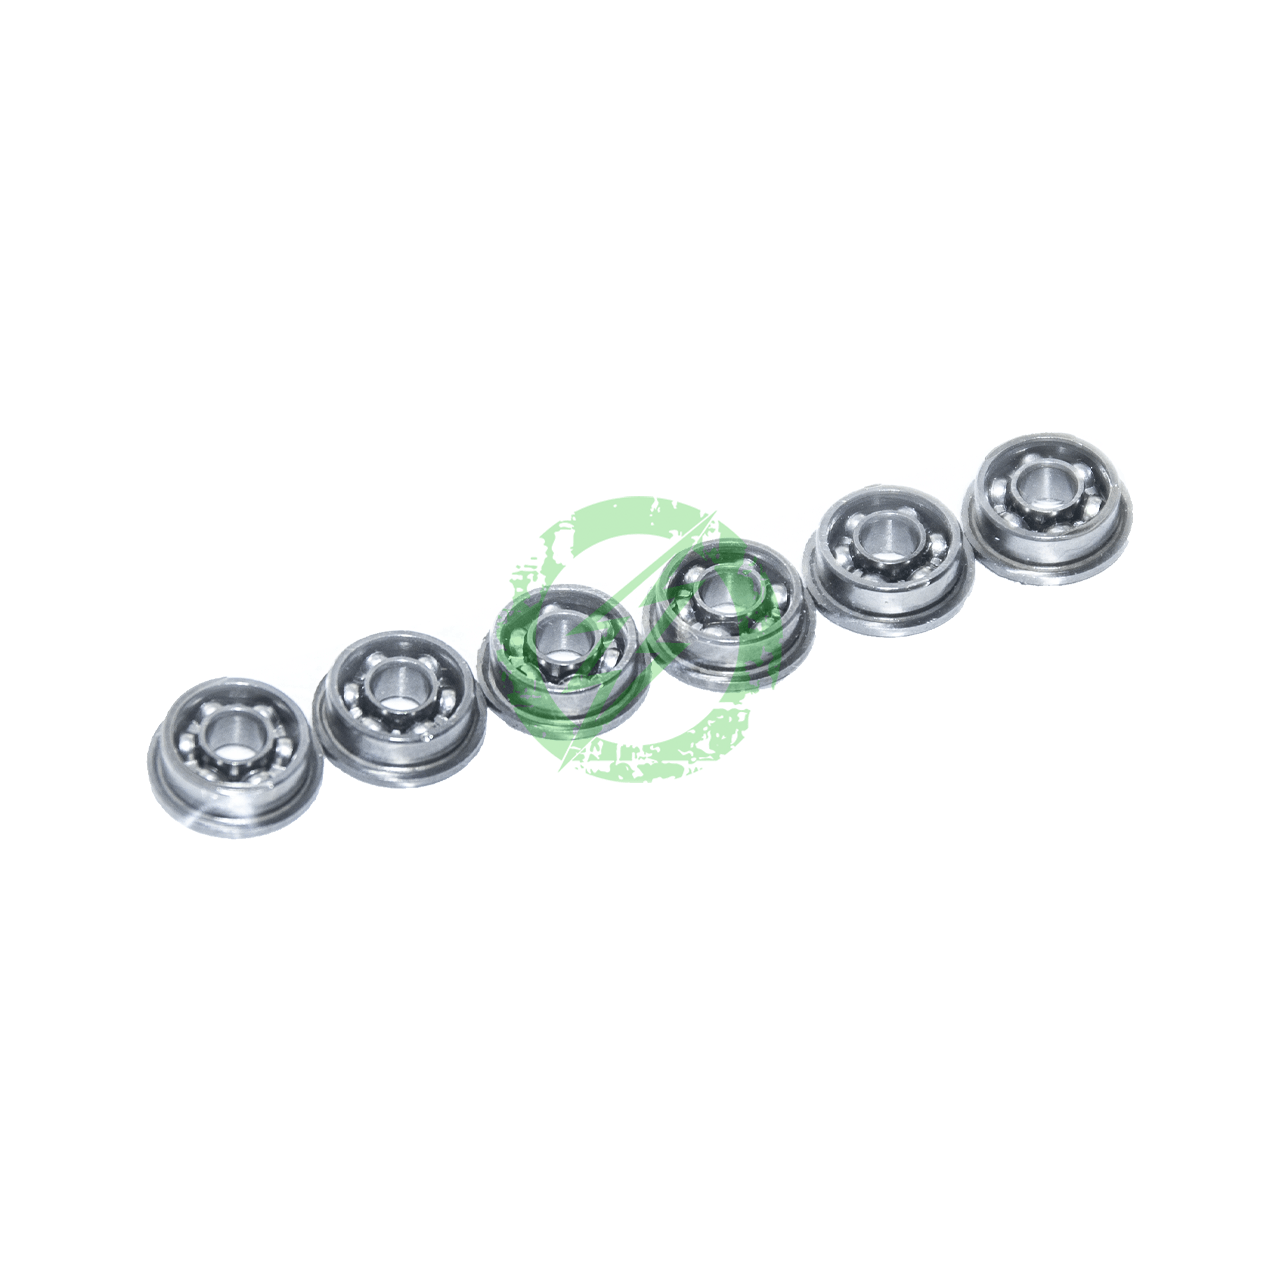 Modify 8mm J-Caged Hybrid Ceramic Ball Bearing Set